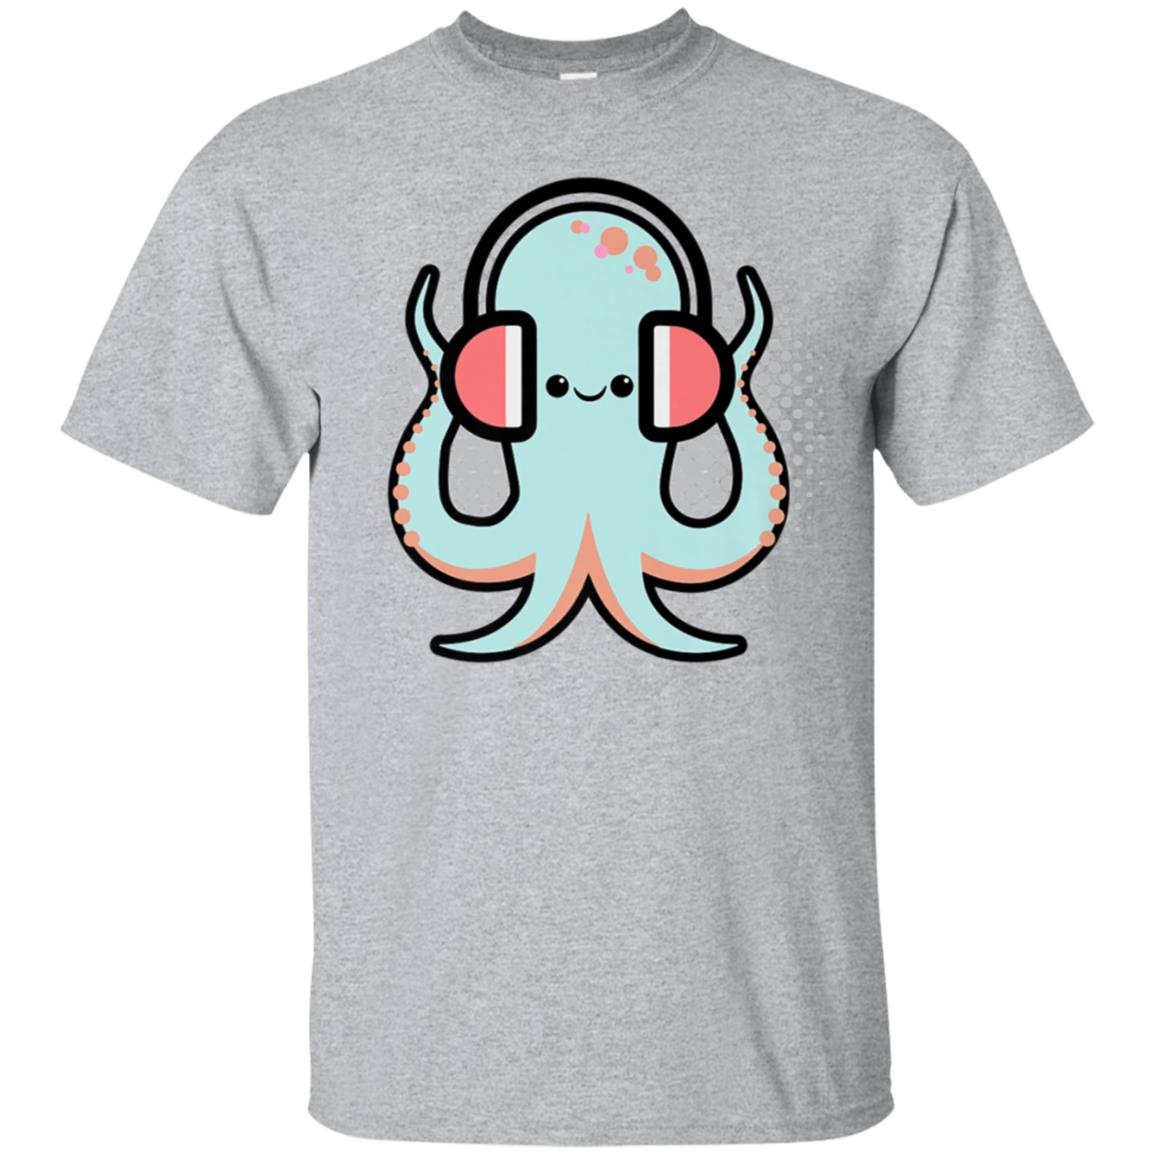 Cute Octopus Shirt Kawaii Funny Anime TShirt Gift 99promocode